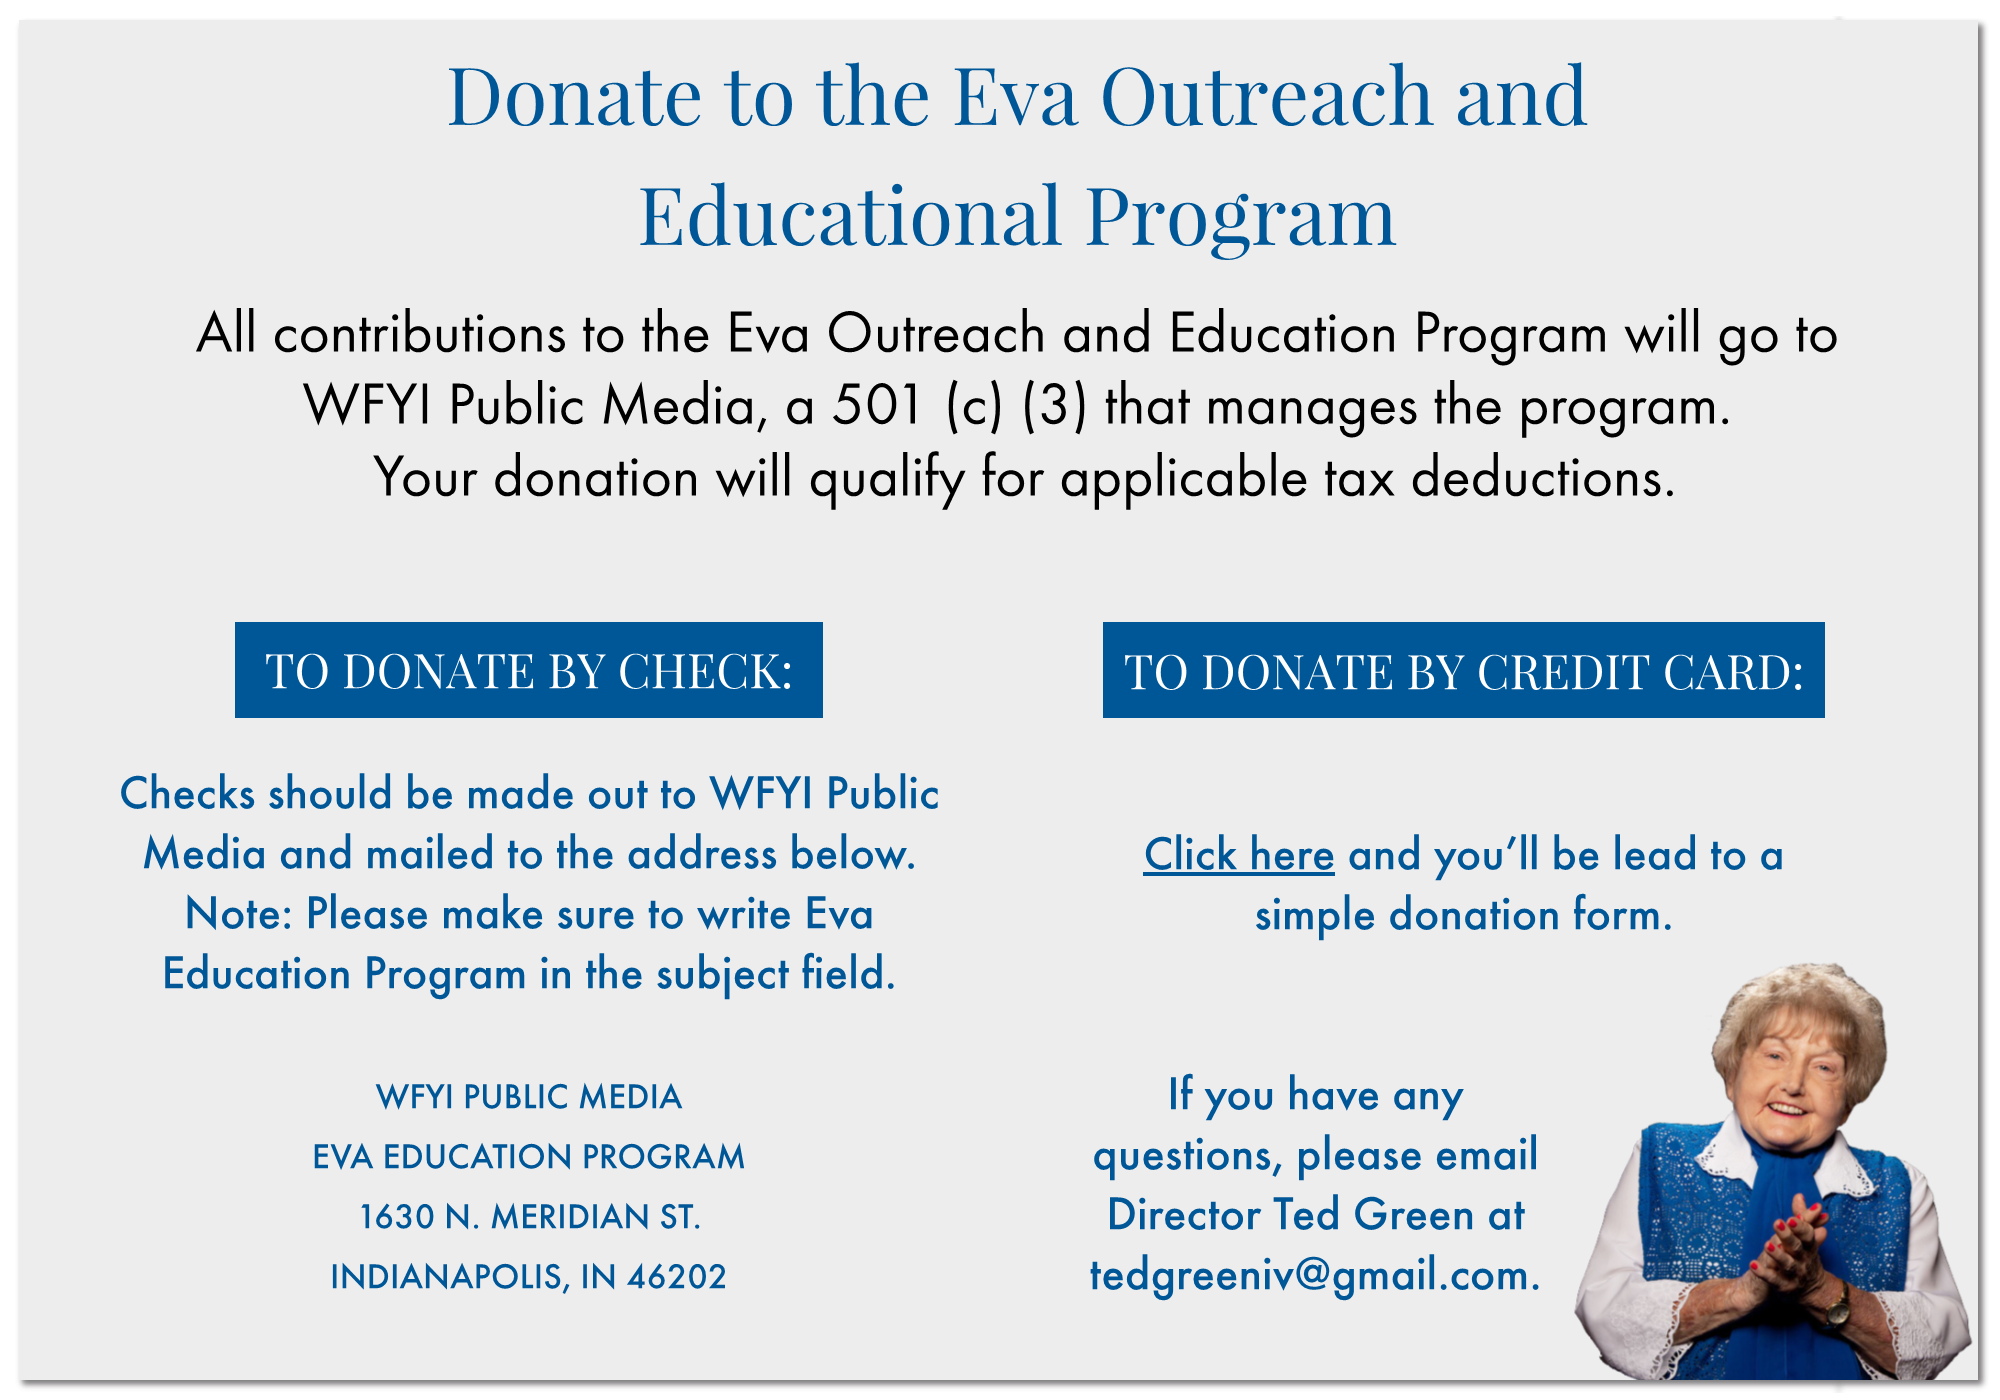 Donate to the Eva Outreach and Educational Program  All contributions to the Eva Outreach and Education Program will go to  WFYI Public Media, a 501 (c) (3) that manages the program.  Your donation will qualify for applicable tax deductions. Checks should be made out to WFYI Public Media and mailed to the address below. Note: Please make sure to write Eva Education Program in the subject field.   WFYI PUBLIC MEDIA EVA EDUCATION PROGRAM 1630 N. MERIDIAN ST. INDIANAPOLIS, IN 46202 TO DONATE BY CREDIT CARD:   Click here and you'll be lead to a  simple donation form.   If you have any  questions, please email  Director Ted Green at tedgreeniv@gmail.com.